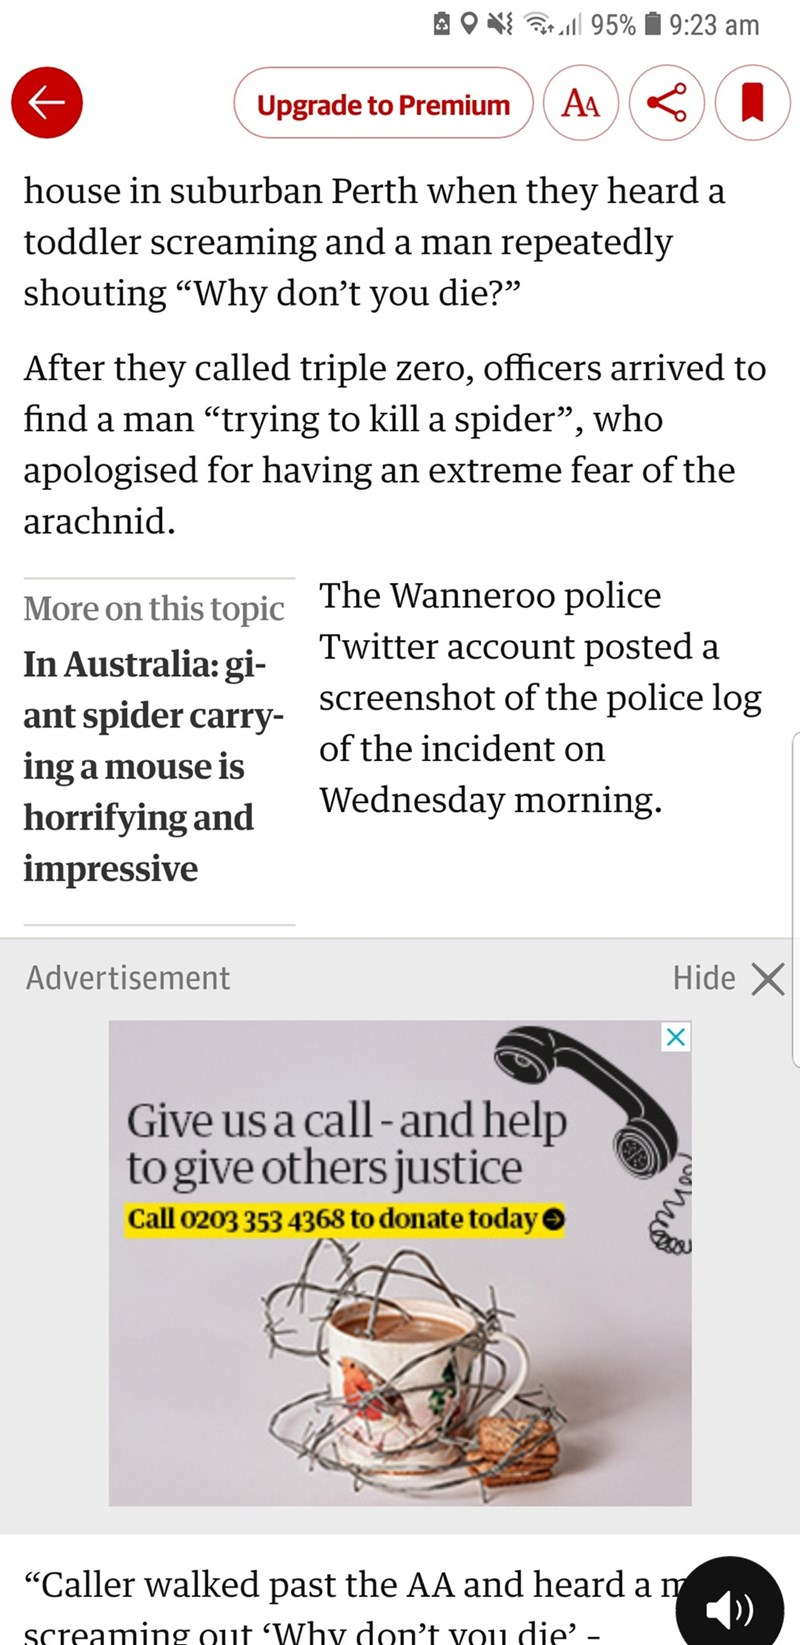 "Text - 95% 9:23 am AA Upgrade to Premium house in suburban Perth when they heard a toddler screaming and a man repeatedly shouting ""Why don't you die?"" After they called triple zero, officers arrived to find a man ""trying to kill a spider"", who apologised for having an extreme fear of the arachnid The Wanneroo police Twitter account posted a More on this topic In Australia: gi- ant spider carry screenshot of the police log of the incident on ing a mouse is Wednesday morning horrifying and impres"